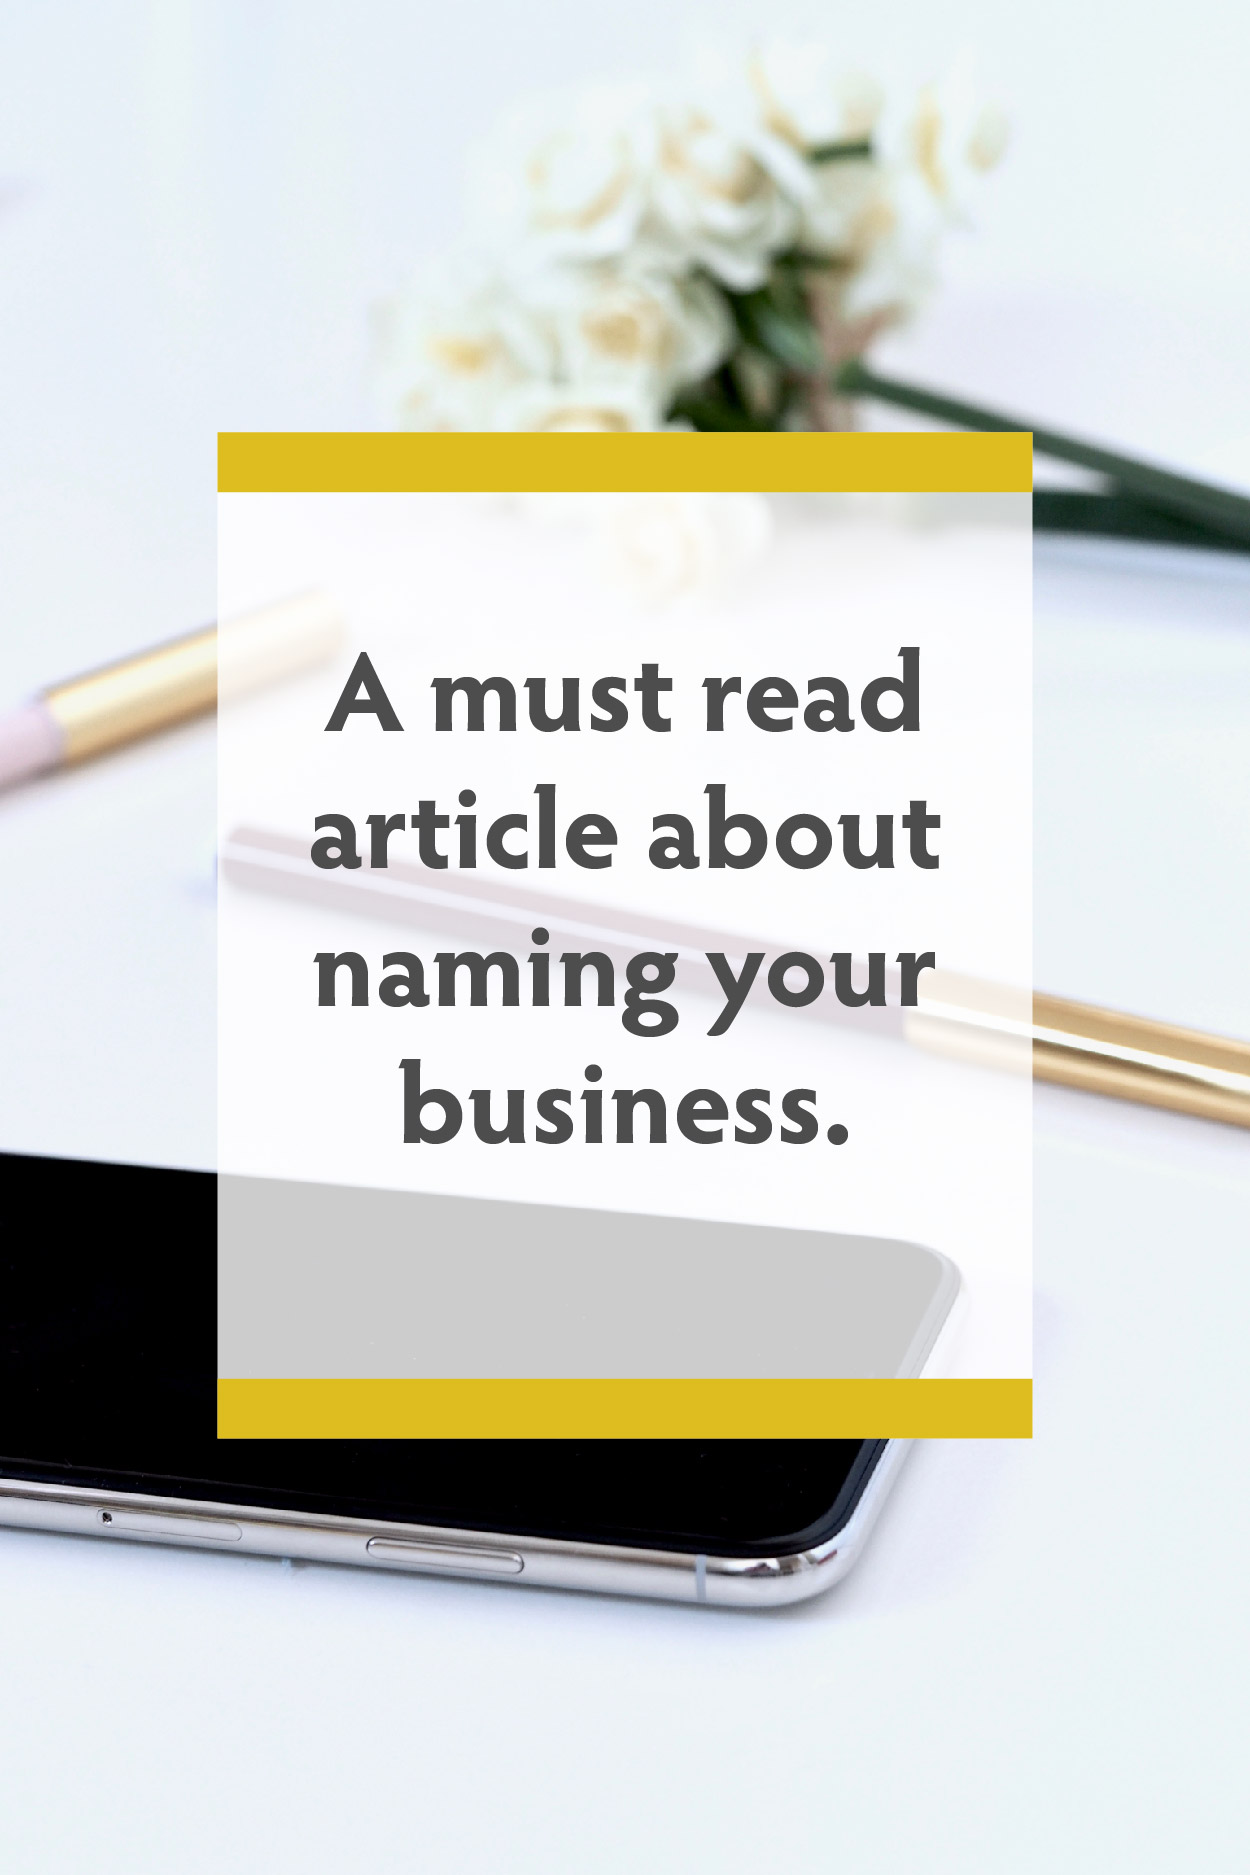 A must read about naming your business.jpg